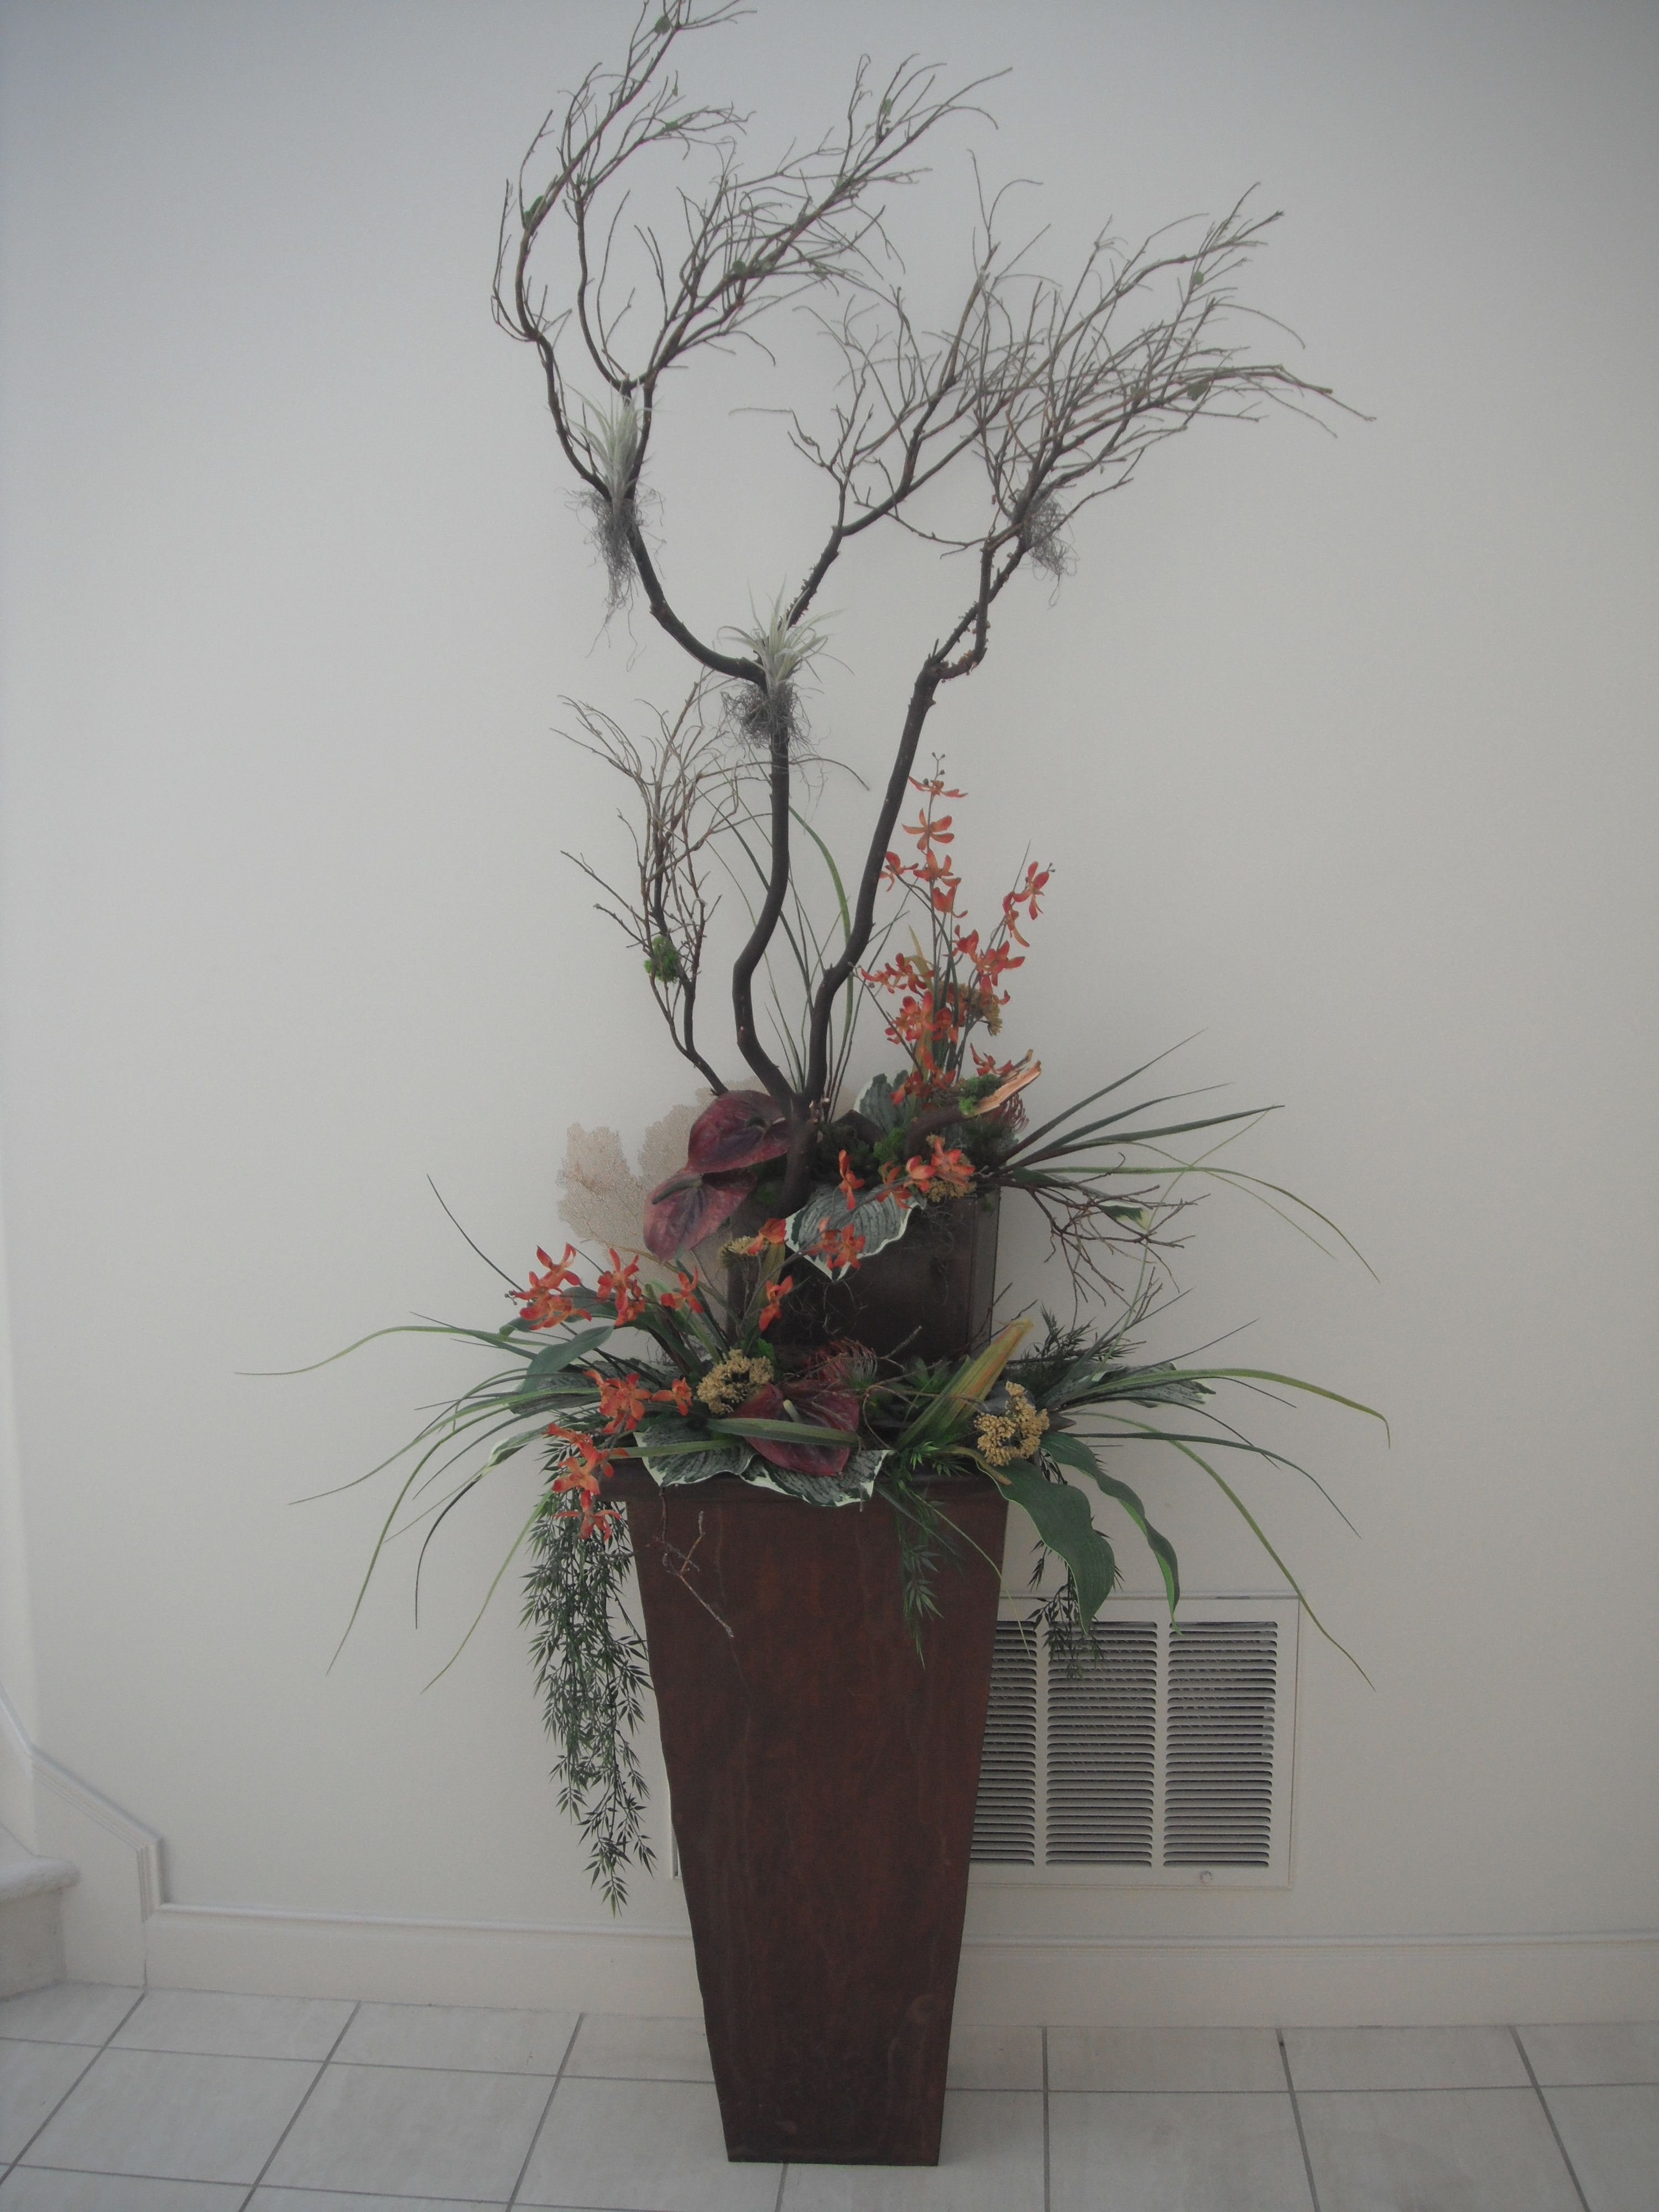 Manzanita is a wonderfully natural design structure to use in larger creations.  I also enjoy adding smaller containers to continue the visual interest.